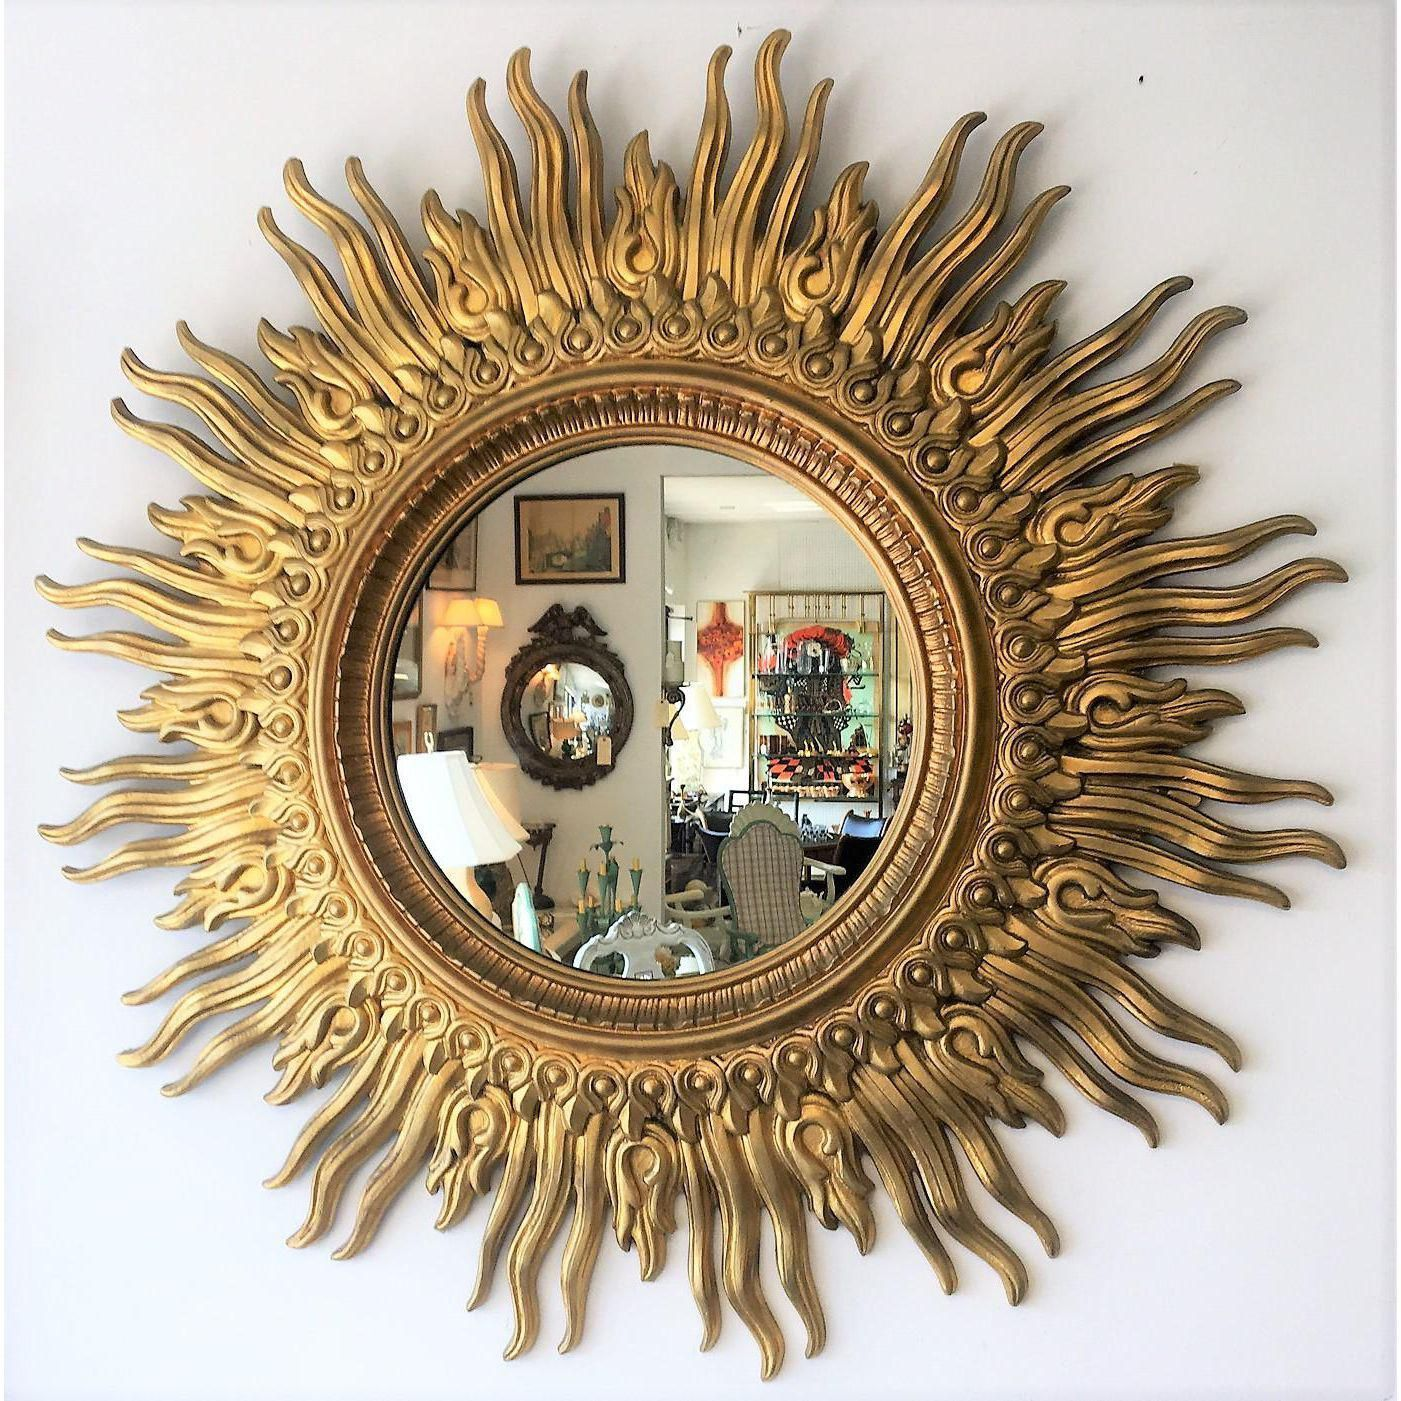 Vintage Sunburst Mirror | Sunburst mirror, Sunburst, Home ...